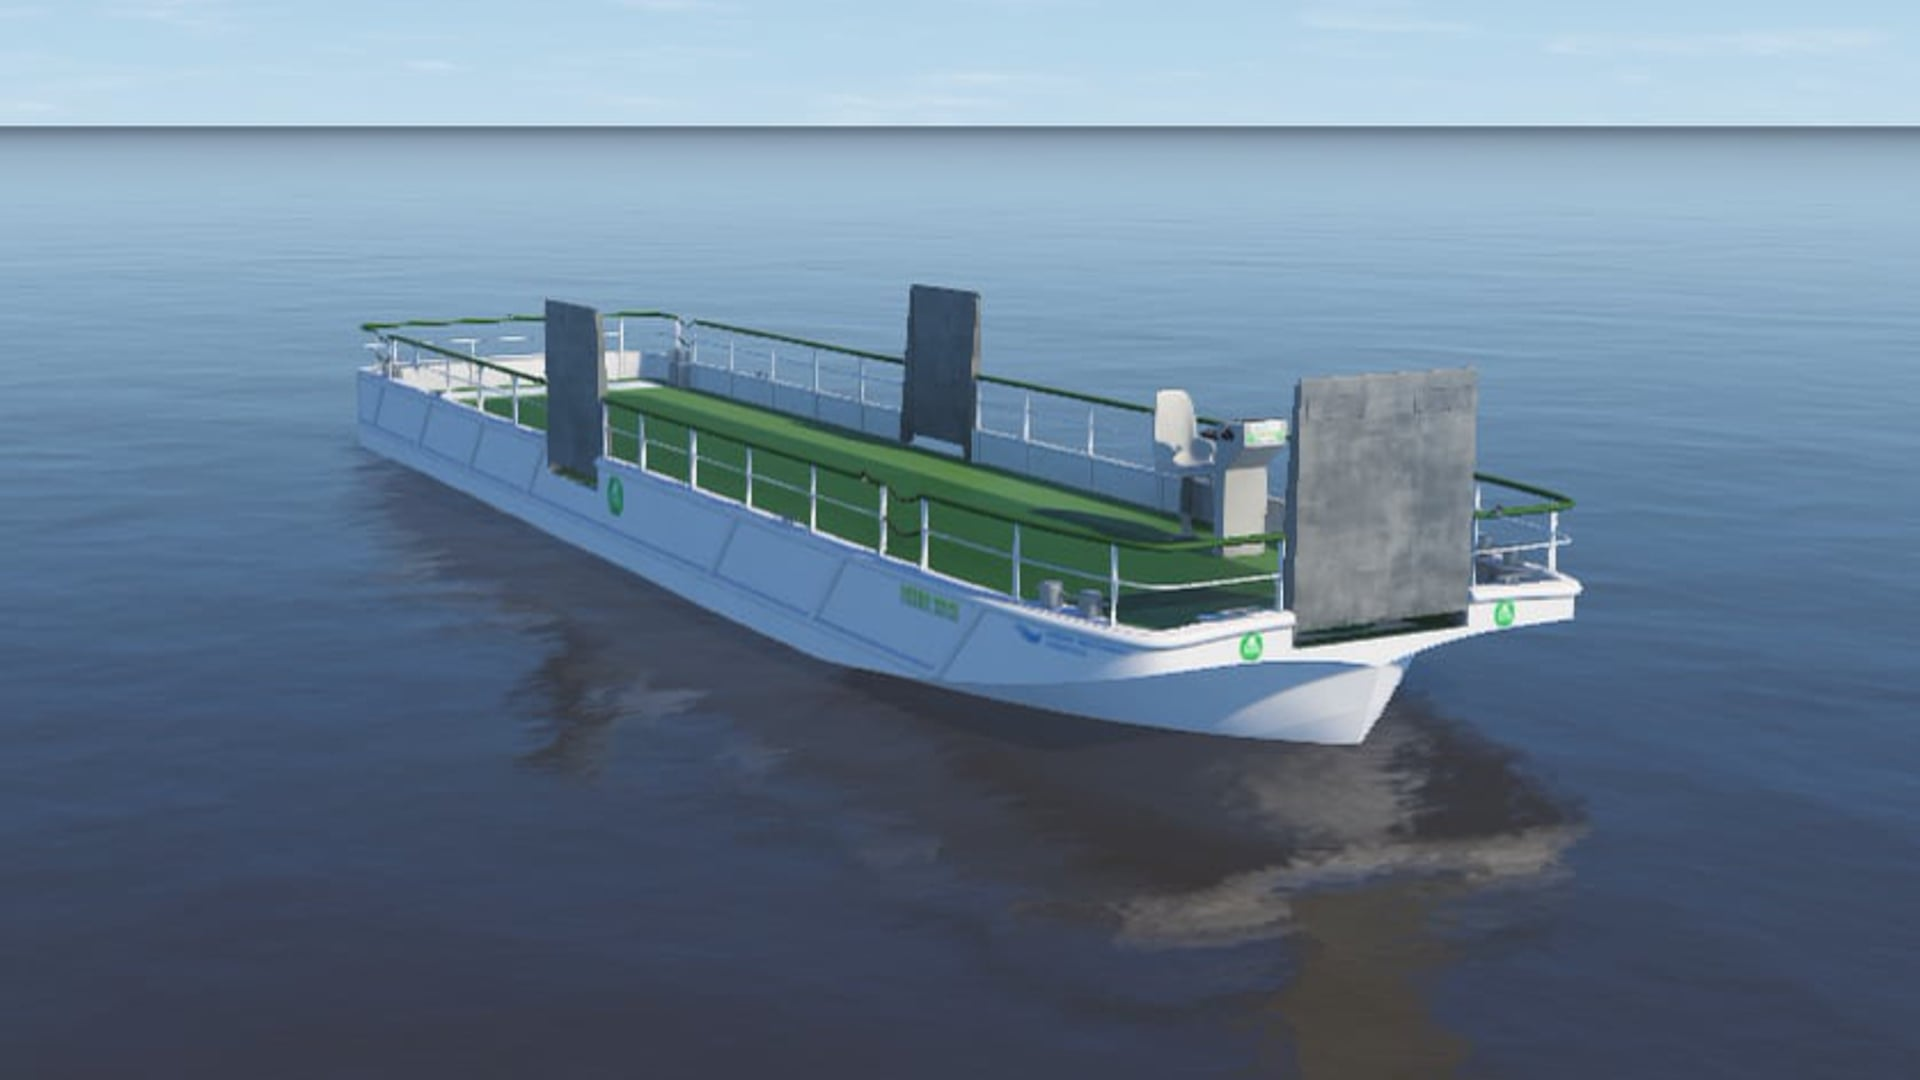 LIVE: A festive launch of the fully emission-free barge Green Wave